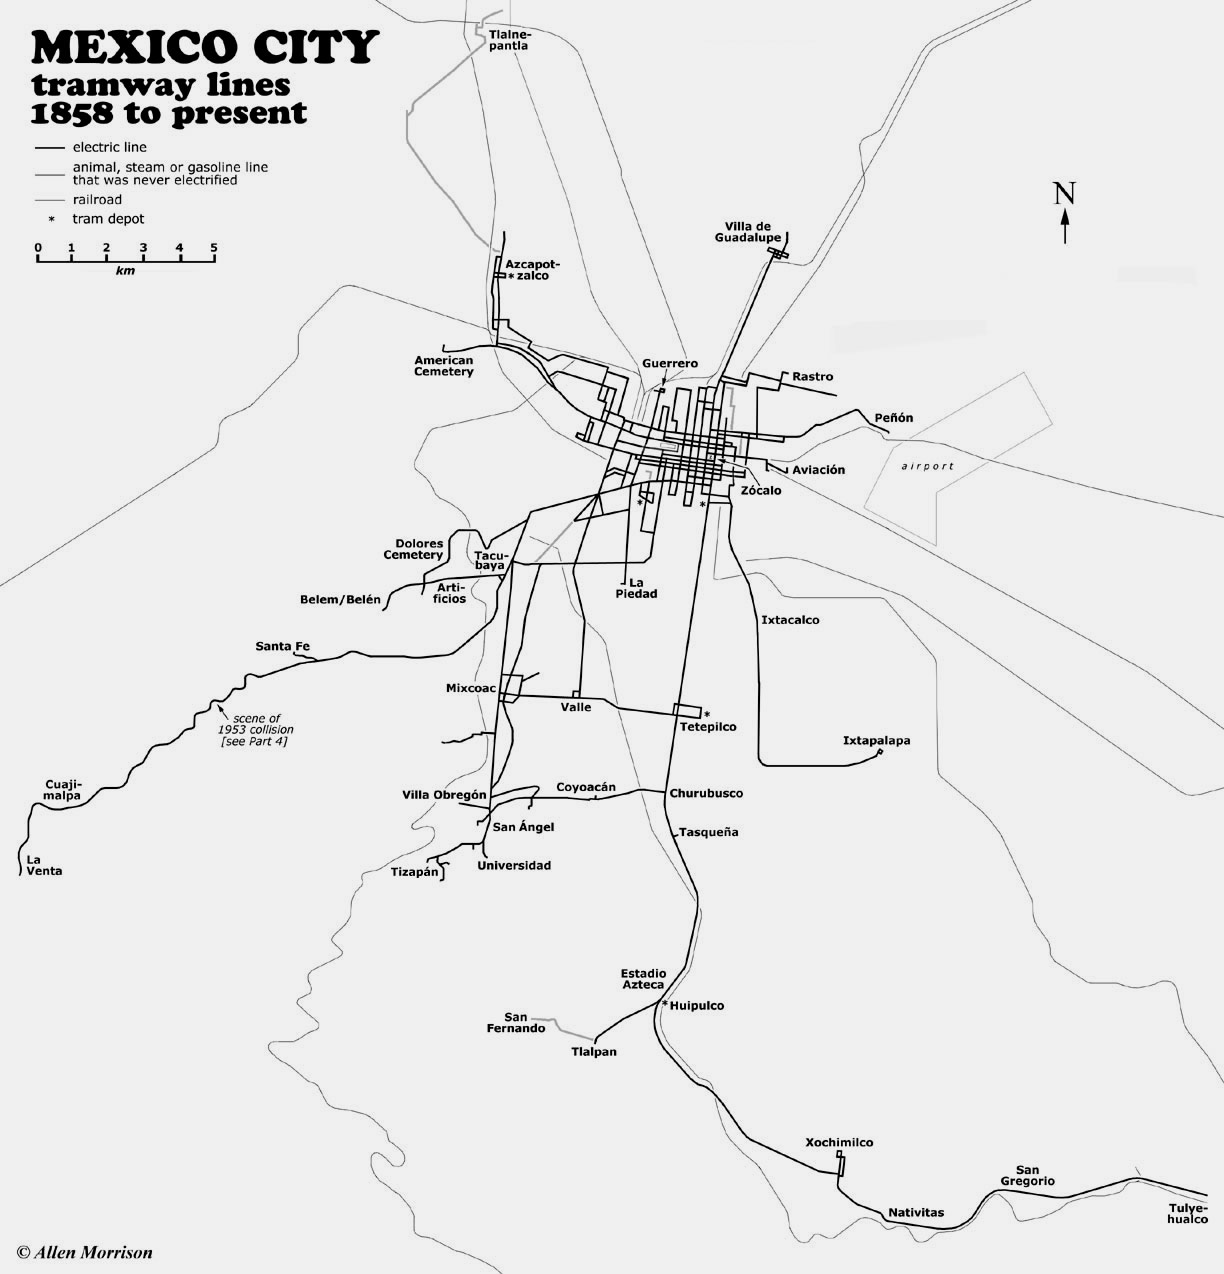 MEXICO CITY Public Transport Page 10 SkyscraperCity